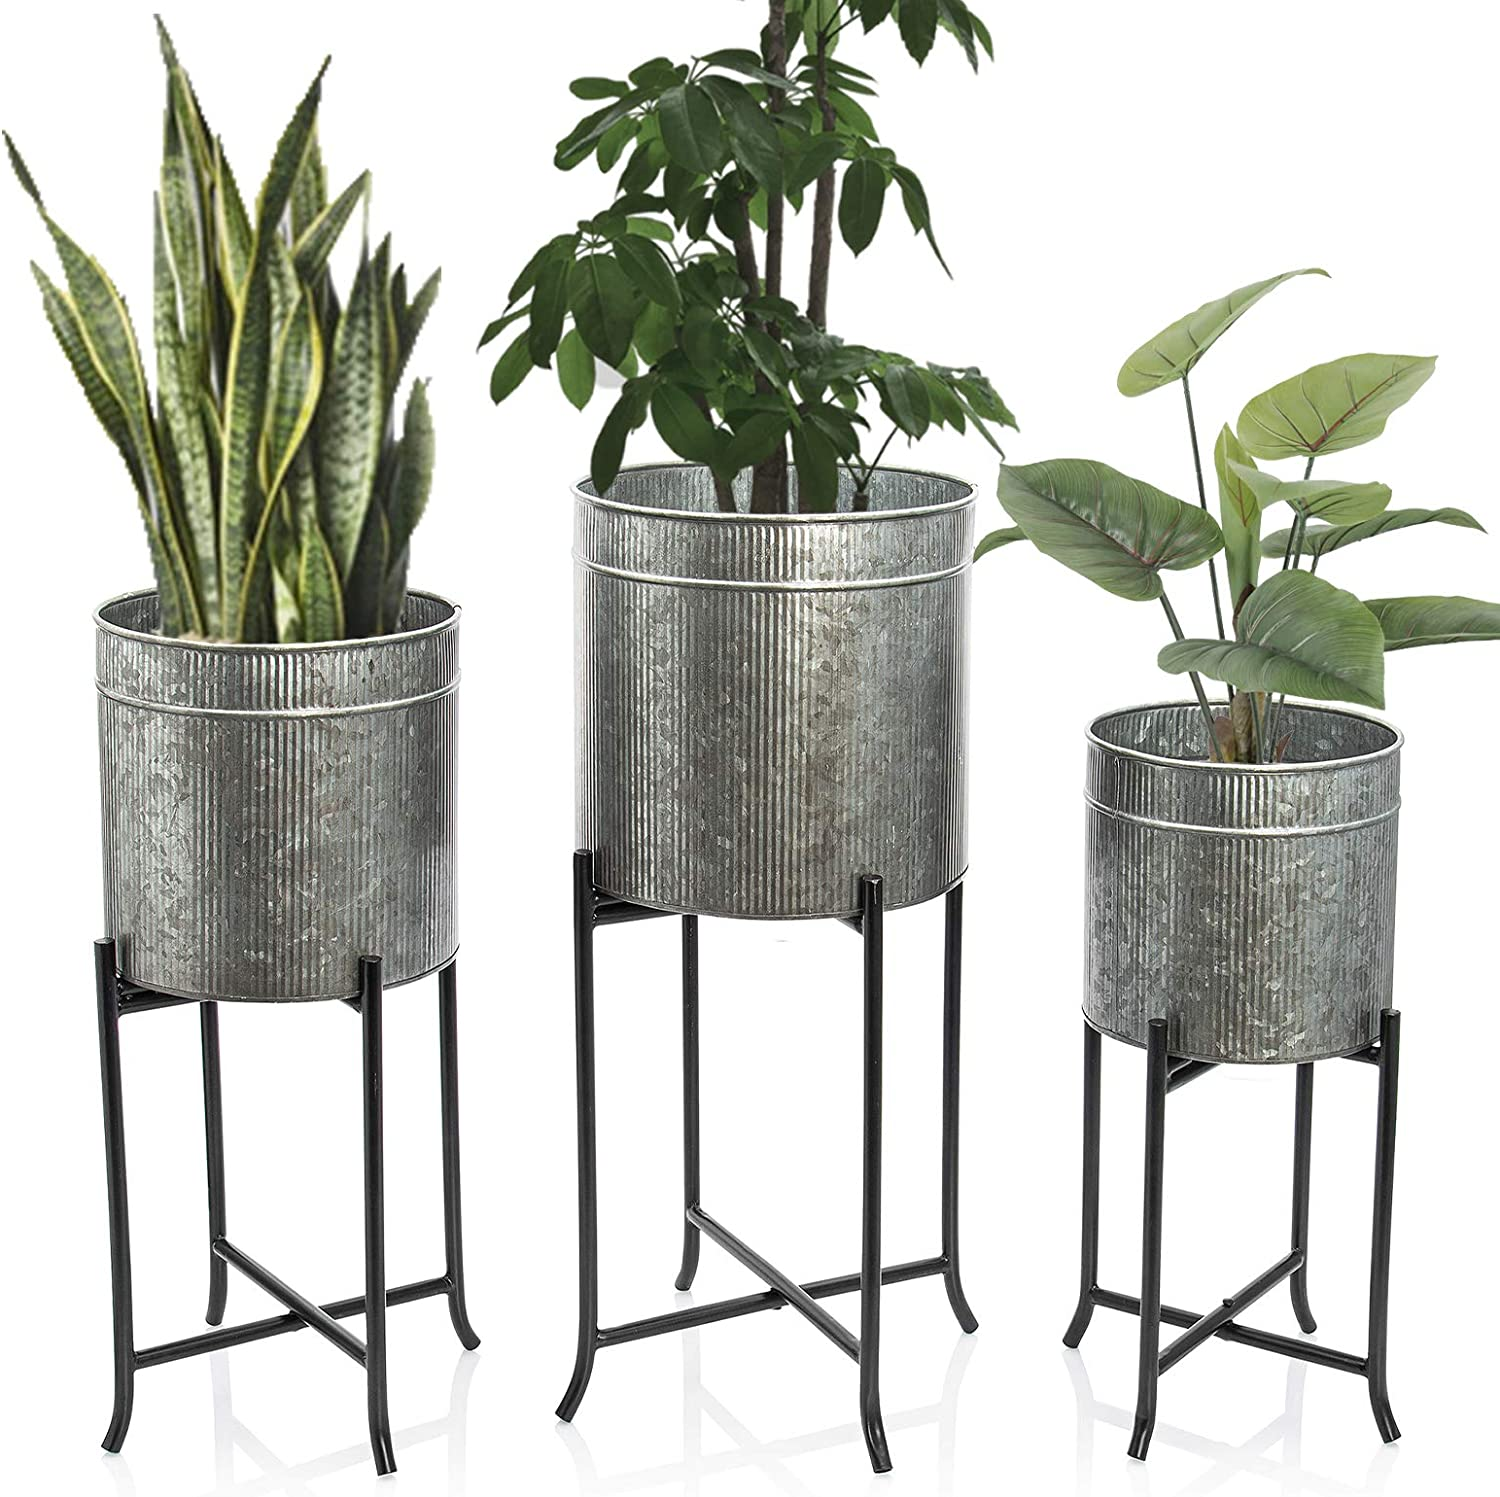 Set 3 Large Galvanized Planters Outdoor & Indoor, Metal Farmhouse Decor for Garden, Patio, Porch & Balcony, Pots with Stand and Drainage, Front Door Decorative Planting Container, Modern Rustic Decor